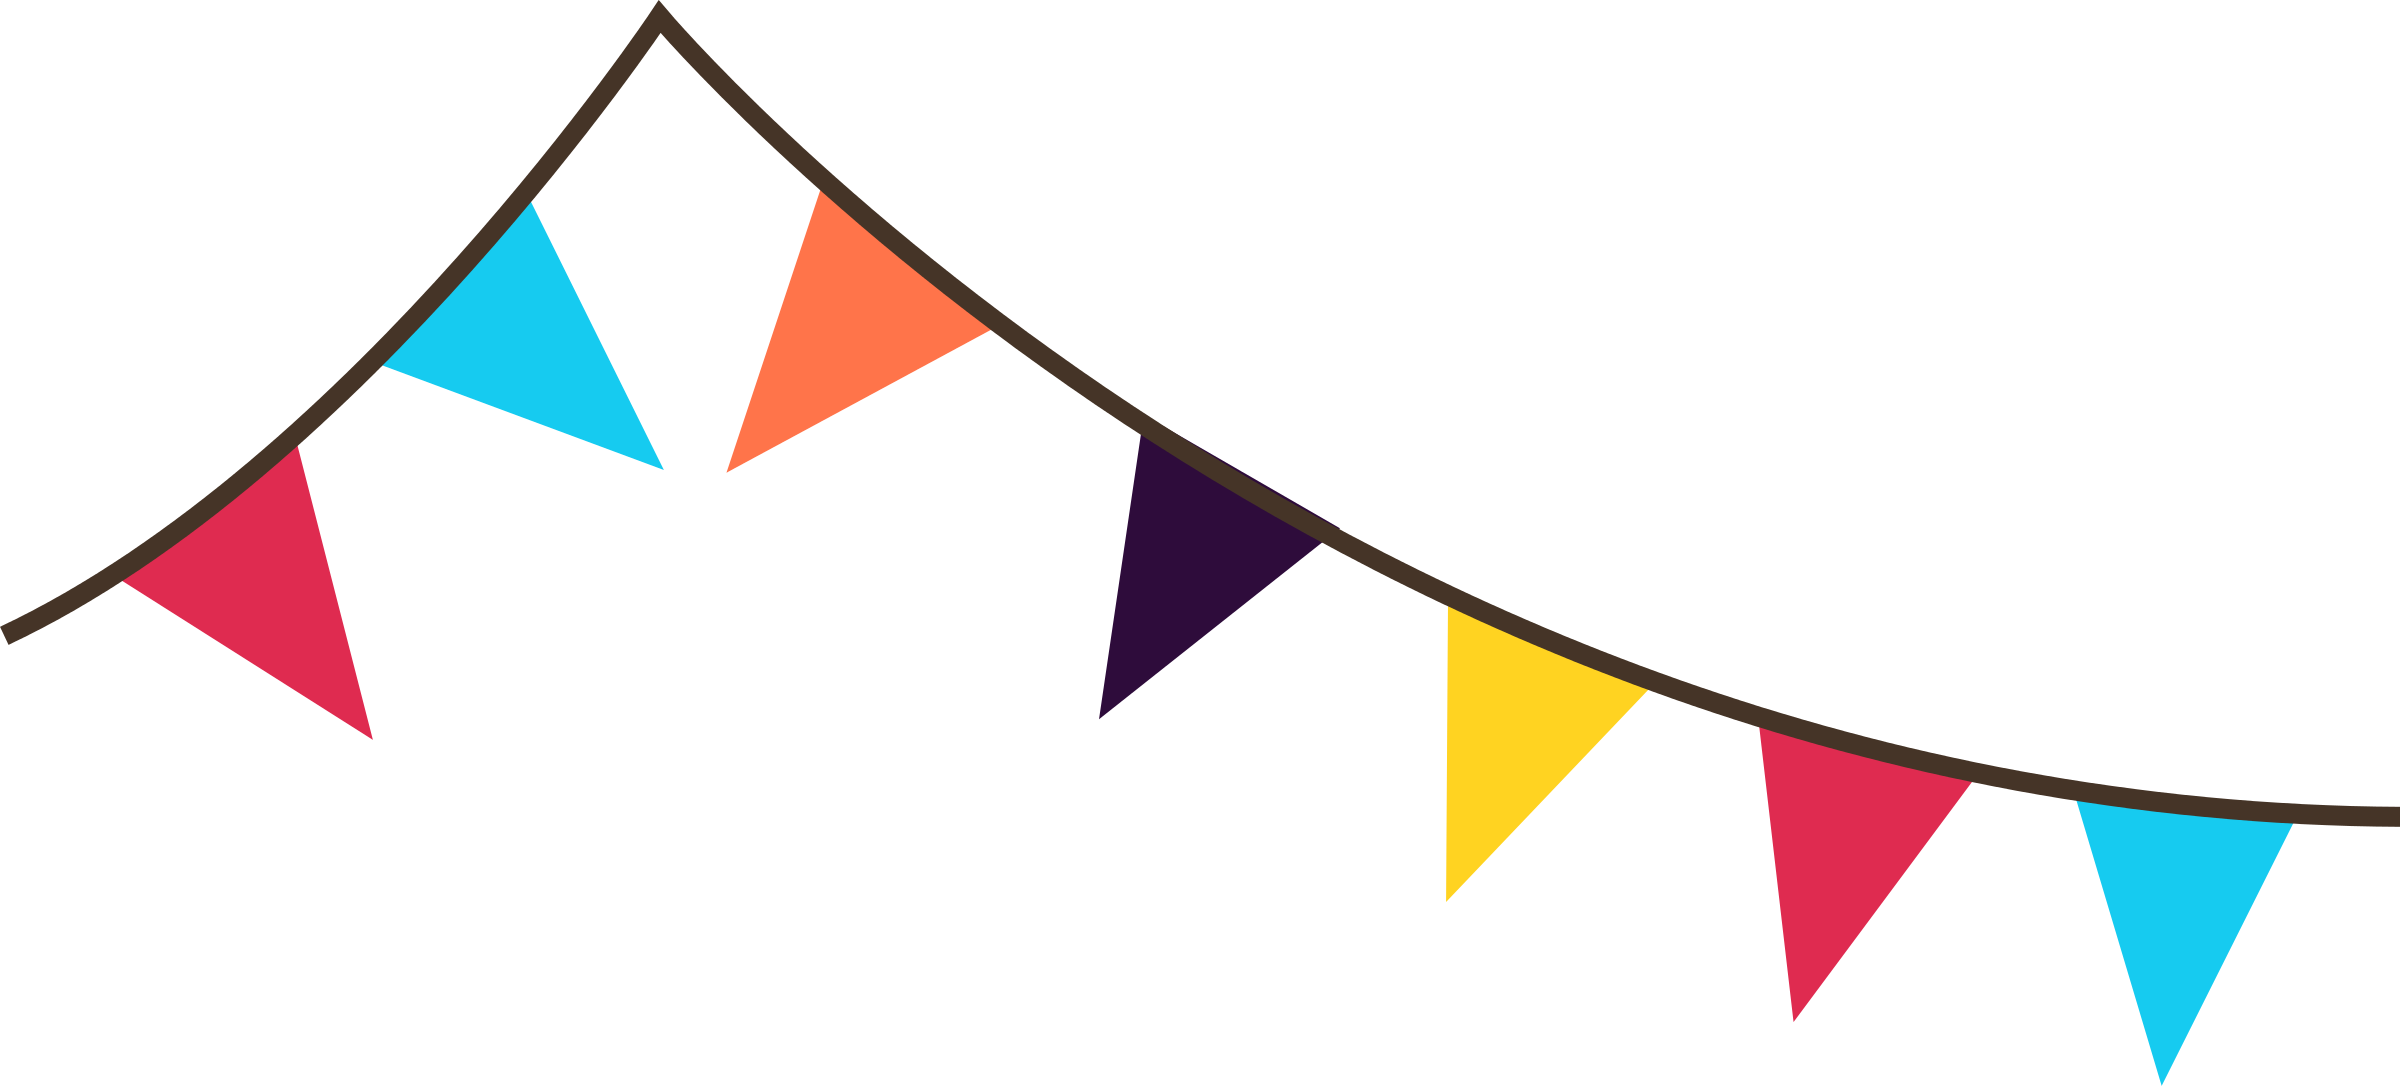 Pennant Banner Clipart Free.